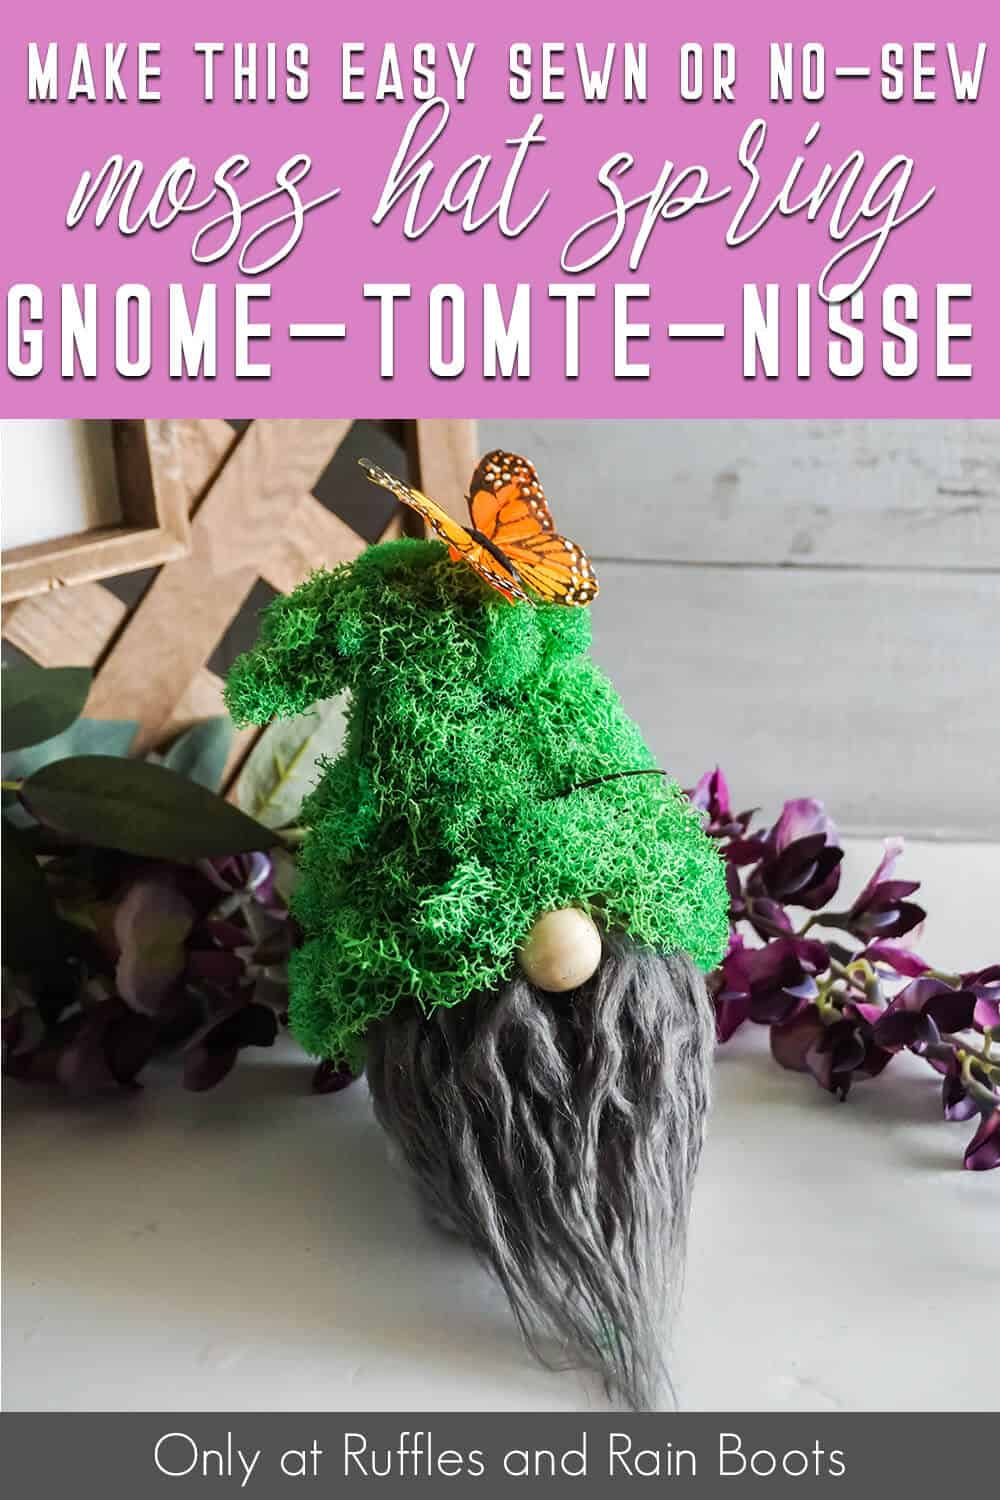 moss no-sew gnome pattern with text which reads make this sewn or no-sew moss hat spring gnome tomte nisse